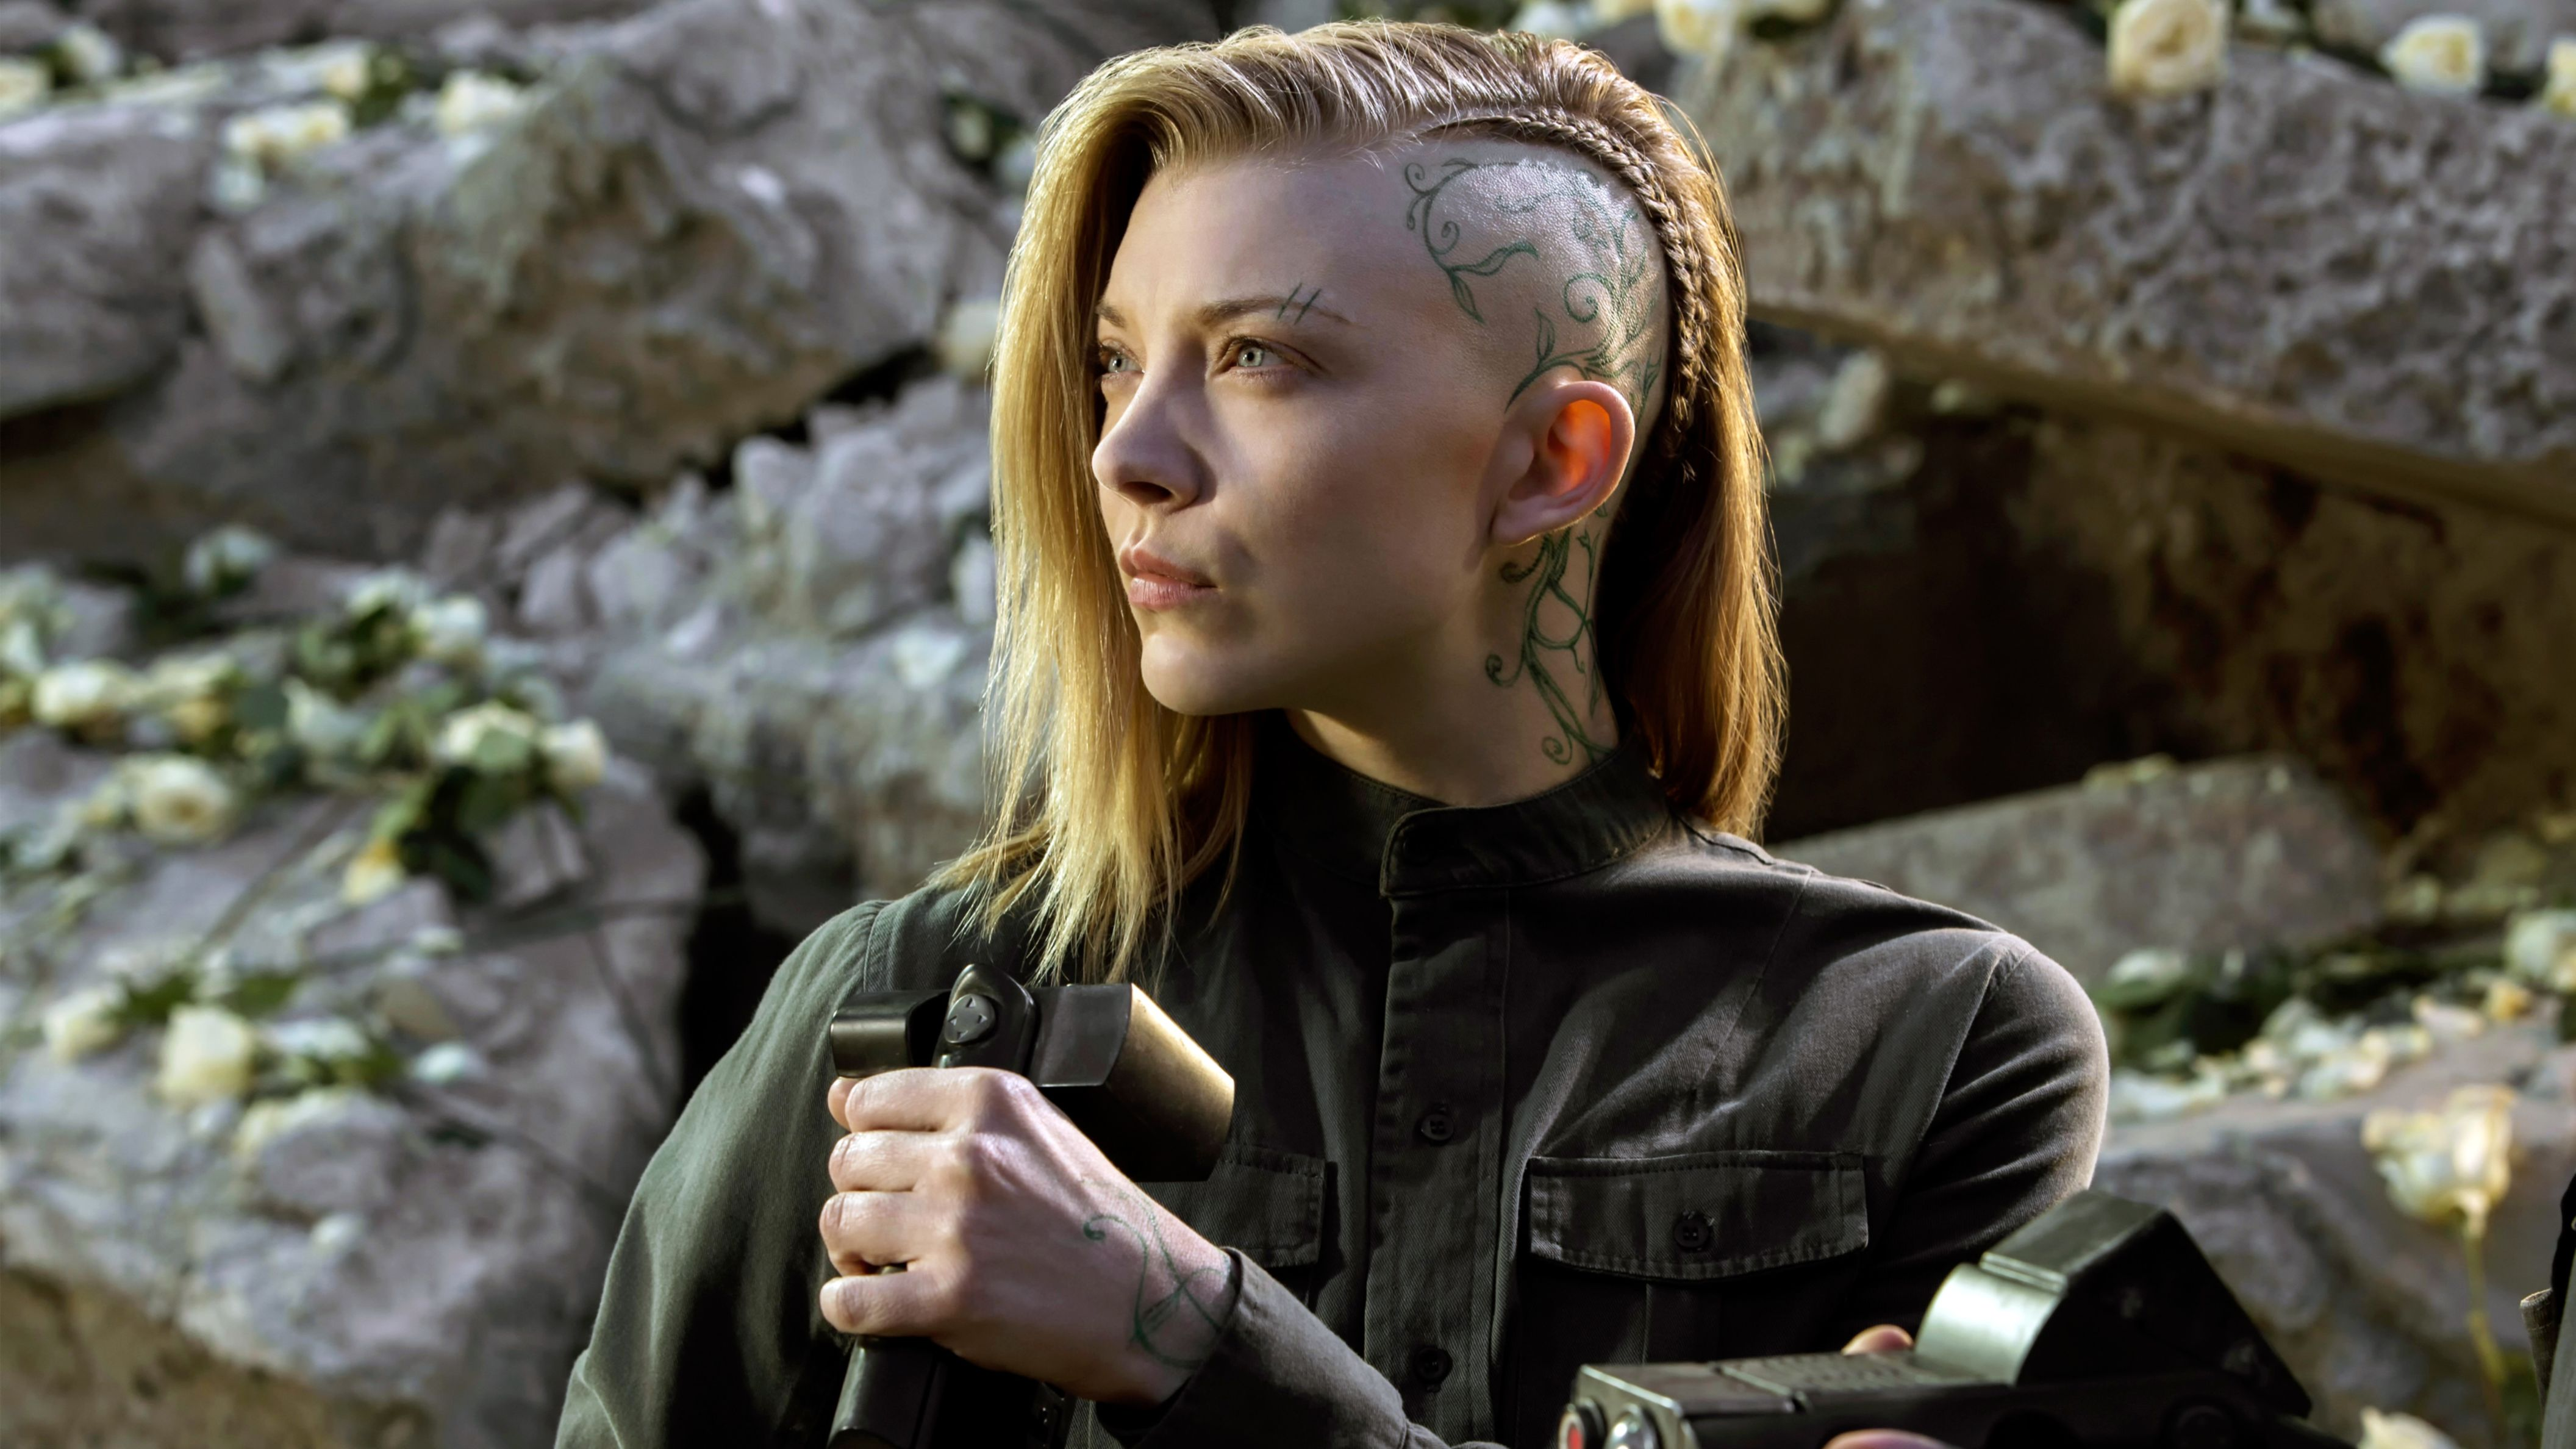 Download free HD Cressida Natalie Dormer Hunger Games Mockingjay Part 2 HD Wallpaper, image